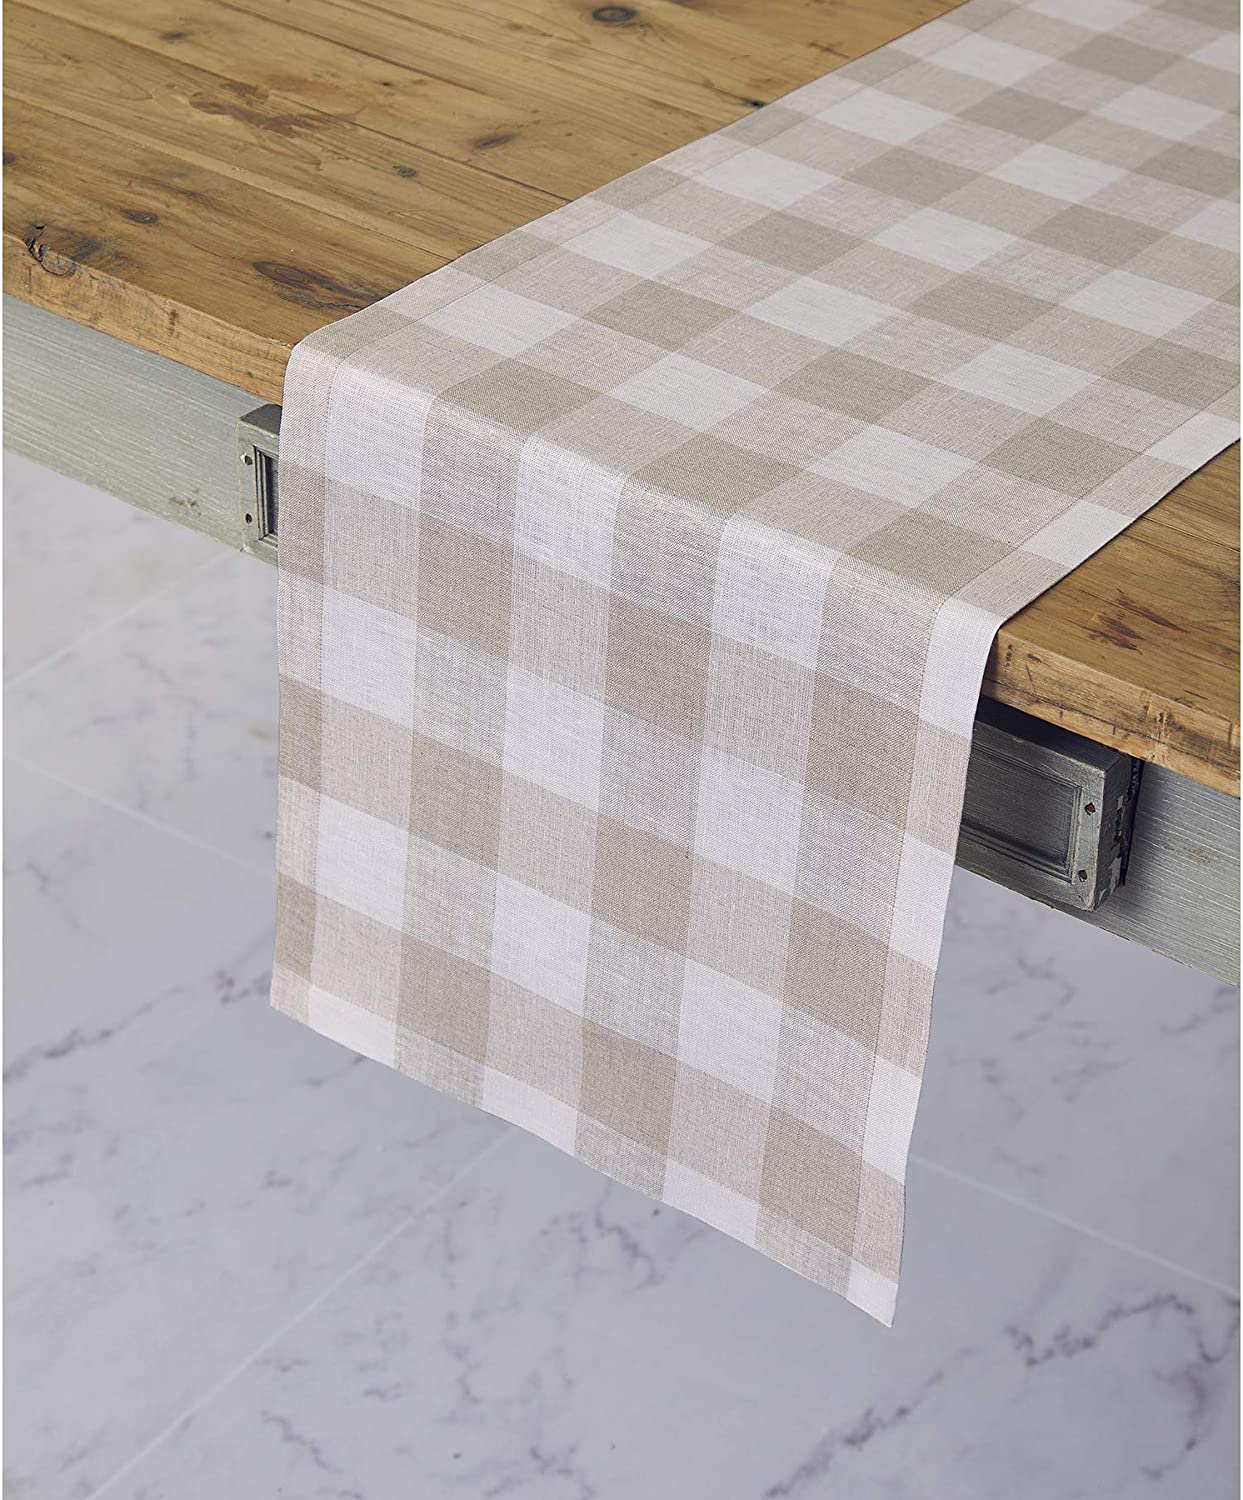 Solino Home 100% Pure Linen Buffalo Check Table Runner – 14 x 36 Inch Natural & White Checks Table Runner Natural Fabric Handcrafted from European Flax